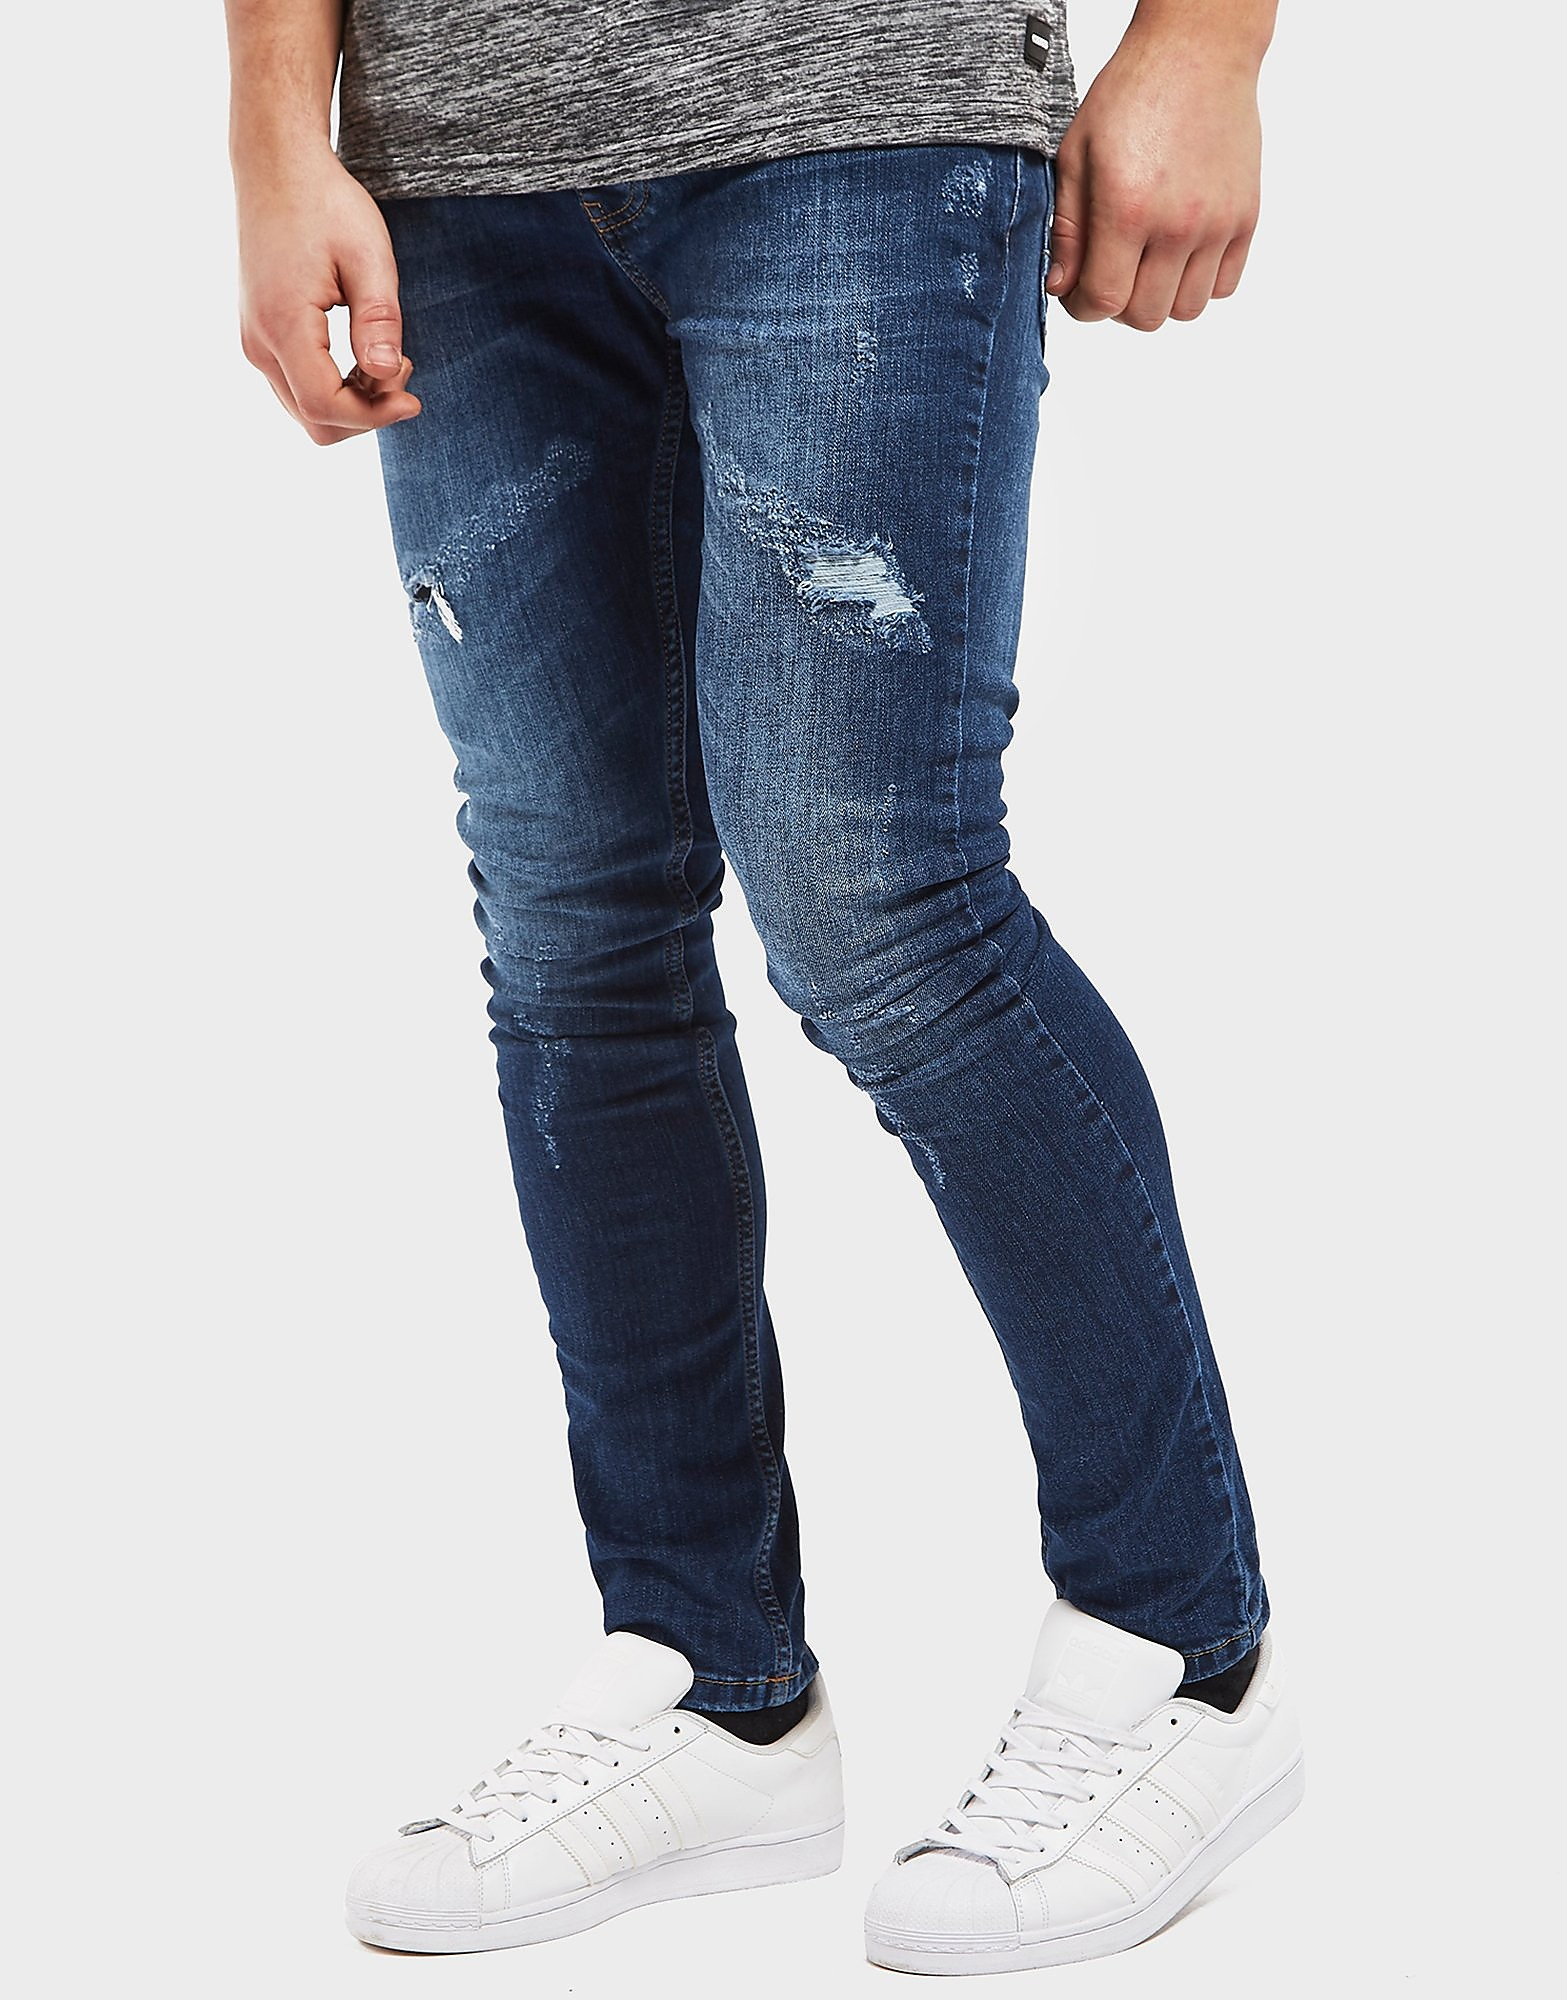 One True Saxon Rip Repair Skinny Jeans - Exclusive